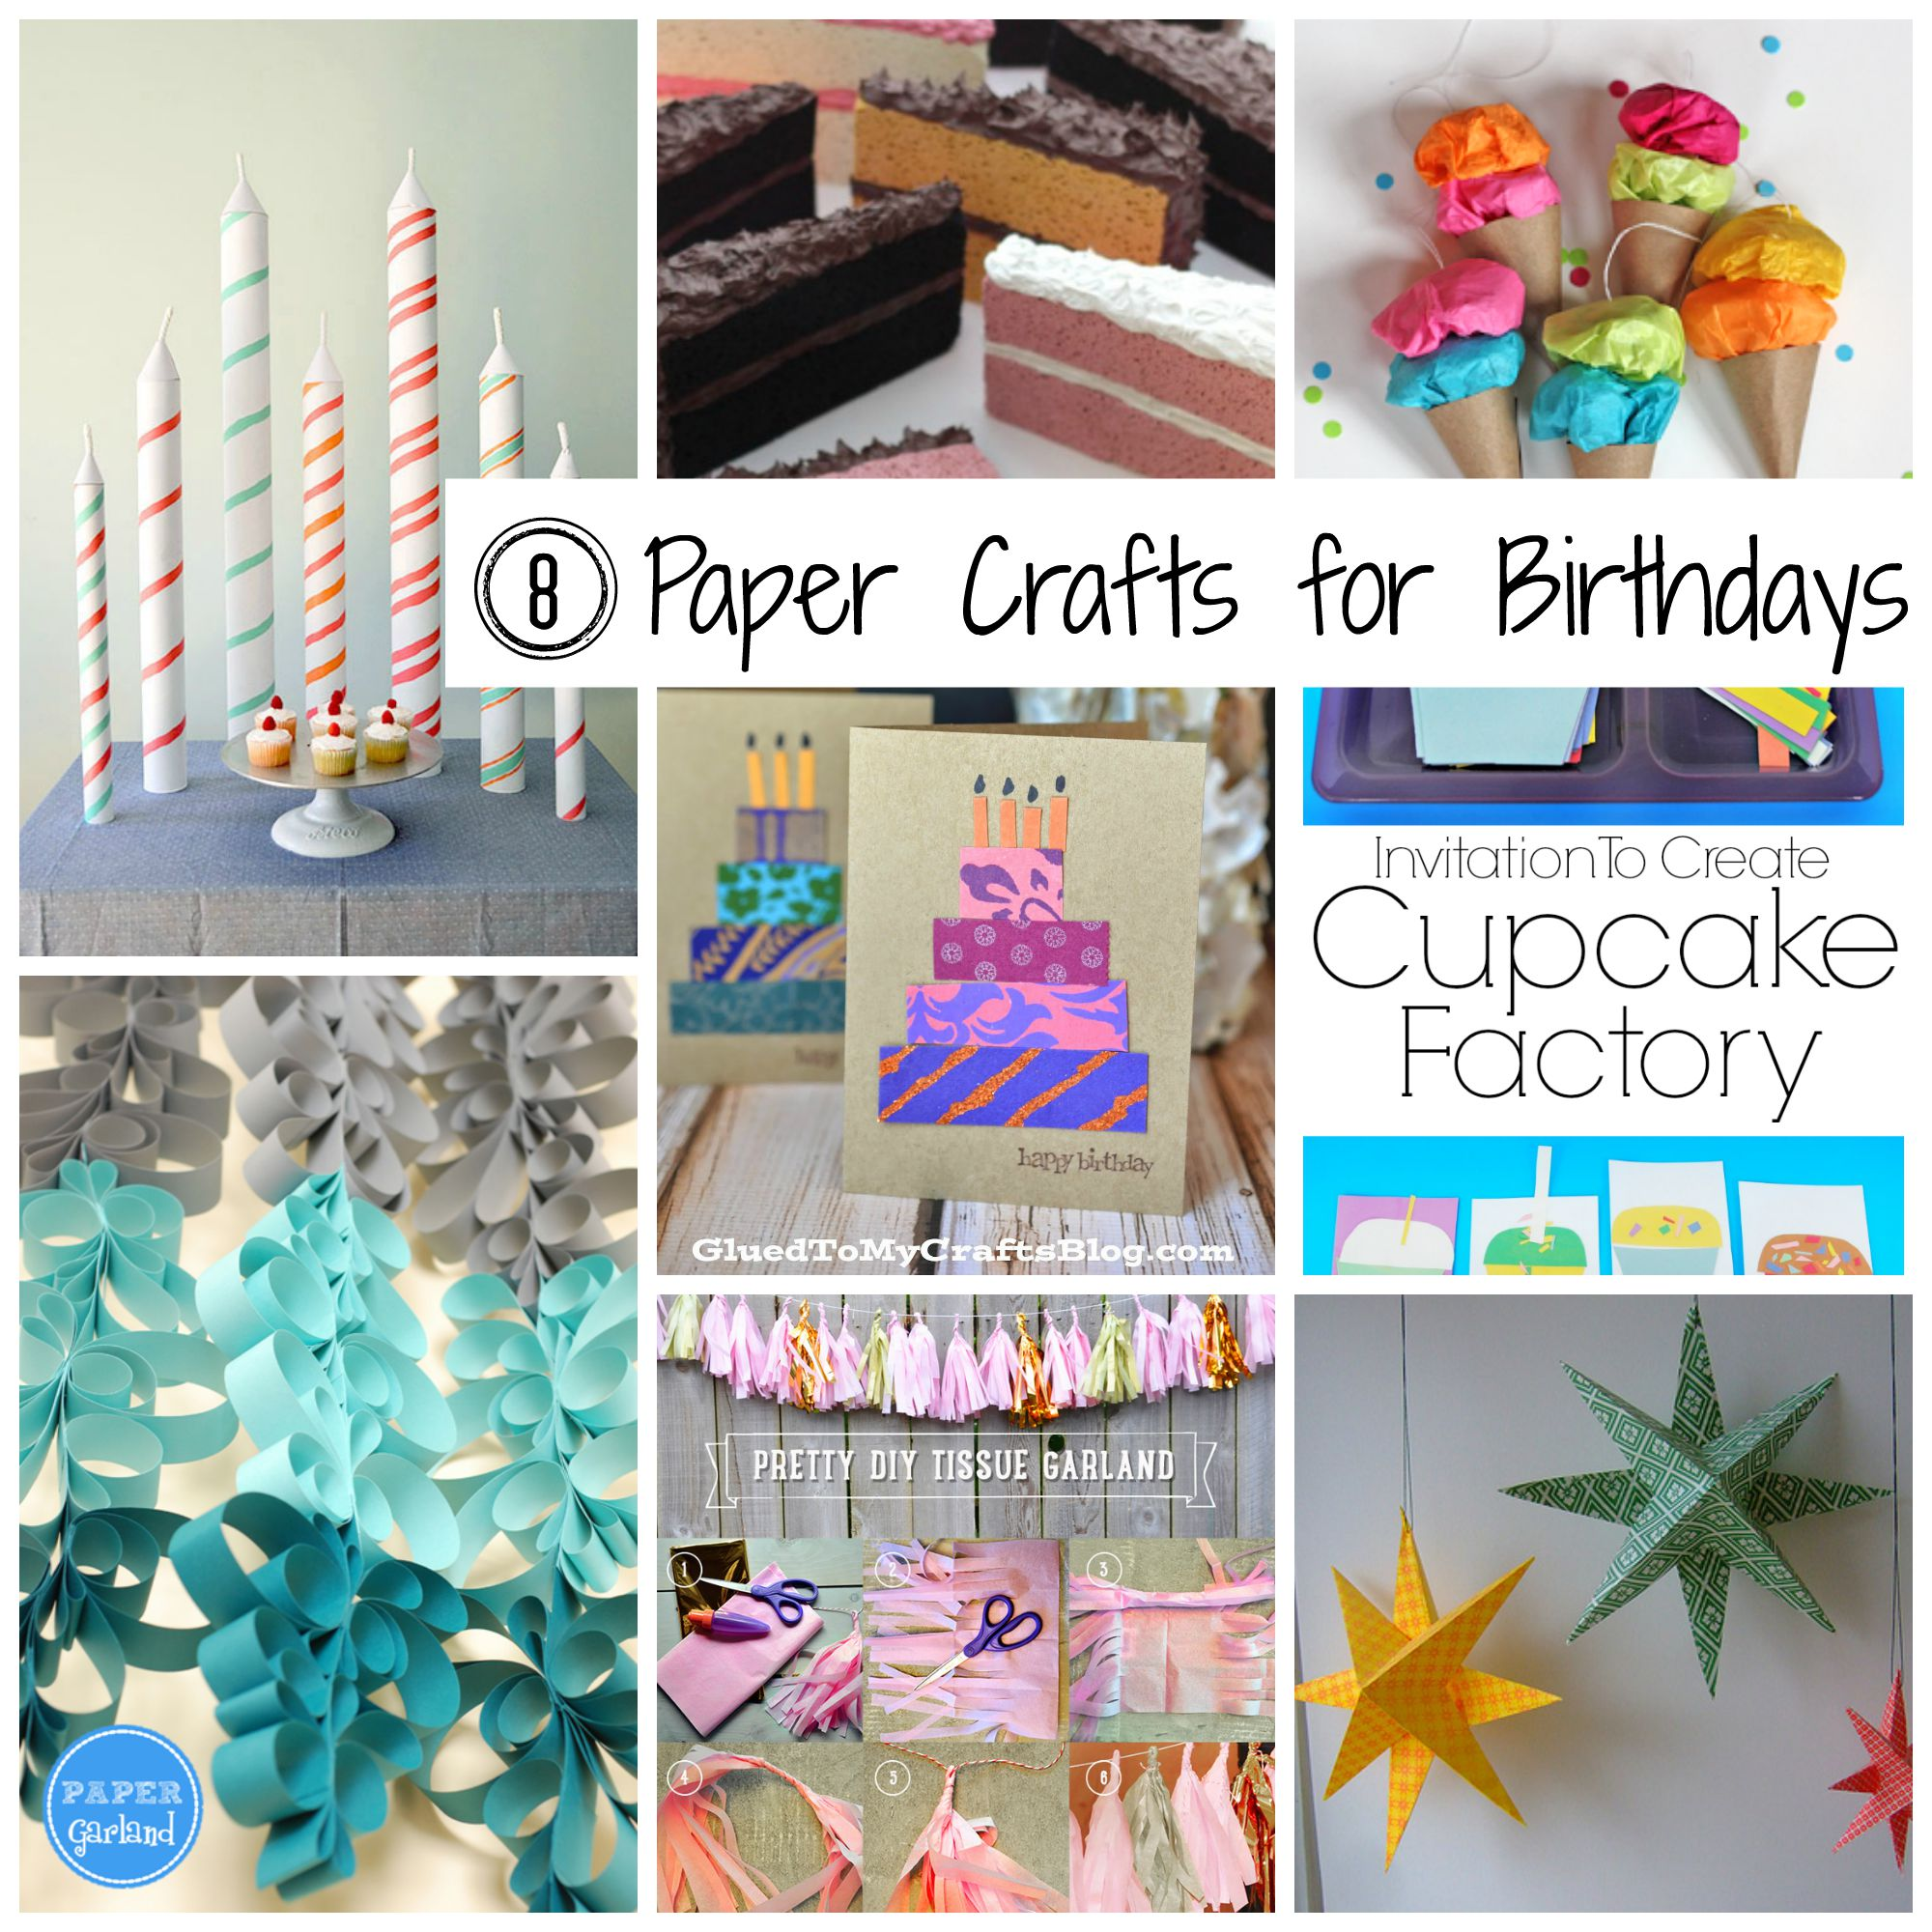 craft birthday party 8 paper crafts for birthdays the papery craftery 1431